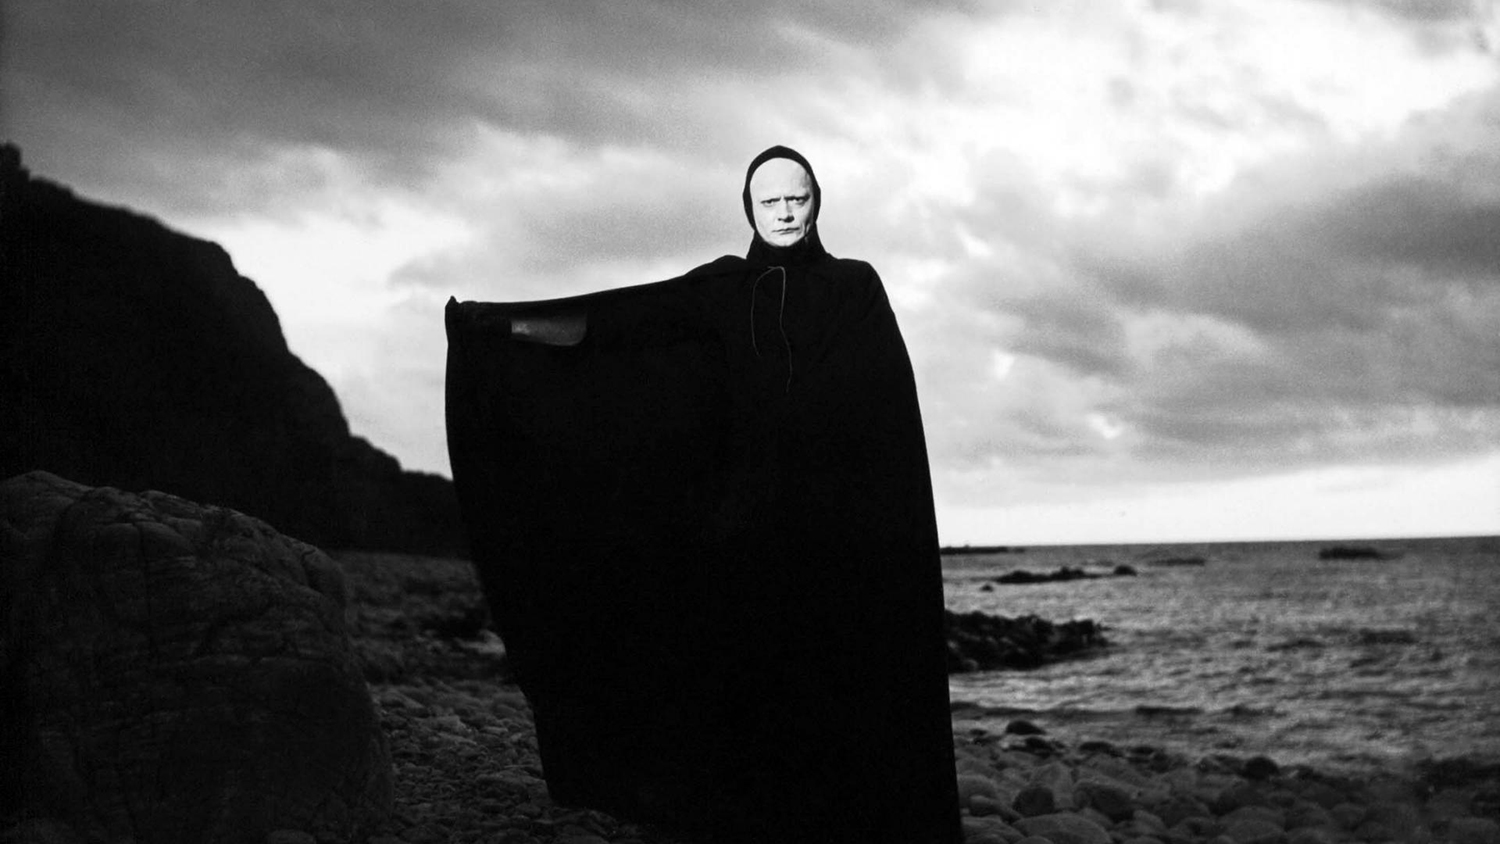 Existential Movies - The Seventh Seal, Death